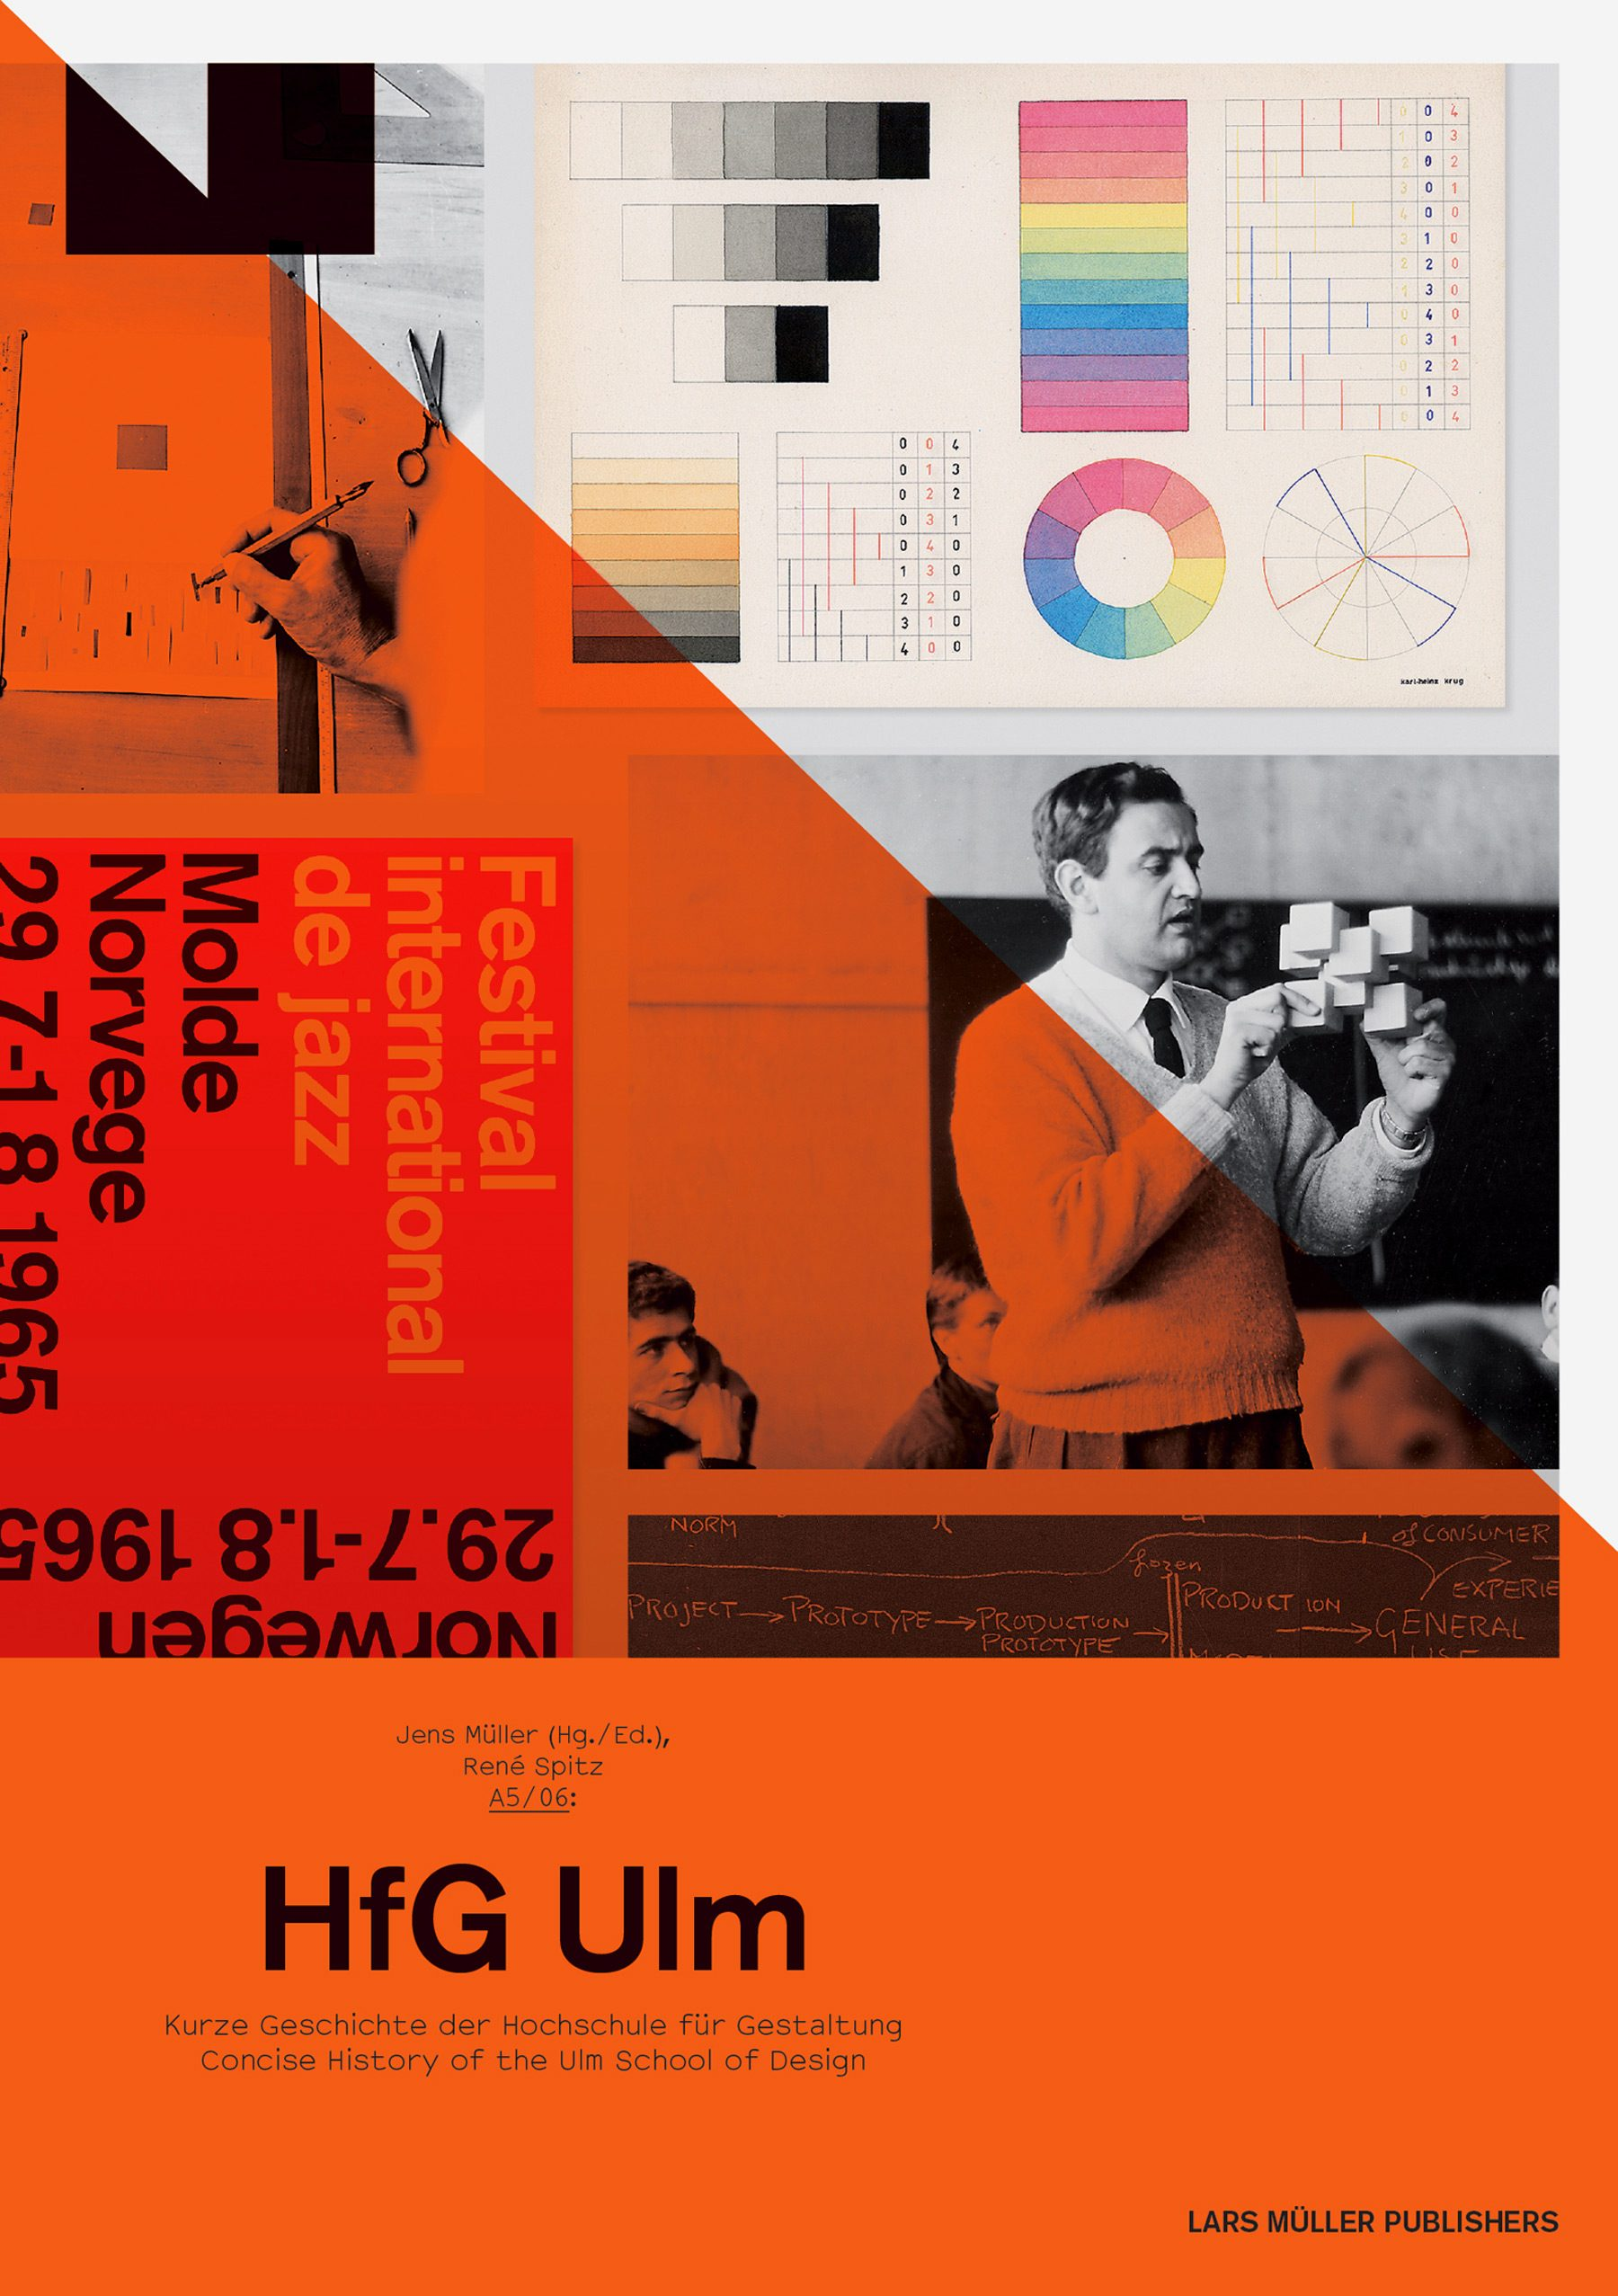 A5/06: HfG Ulm – Concise History of the Ulm School of Design, René Spitz, Jens Müller, Lars Müller Publishers, Cover, David Fischbach